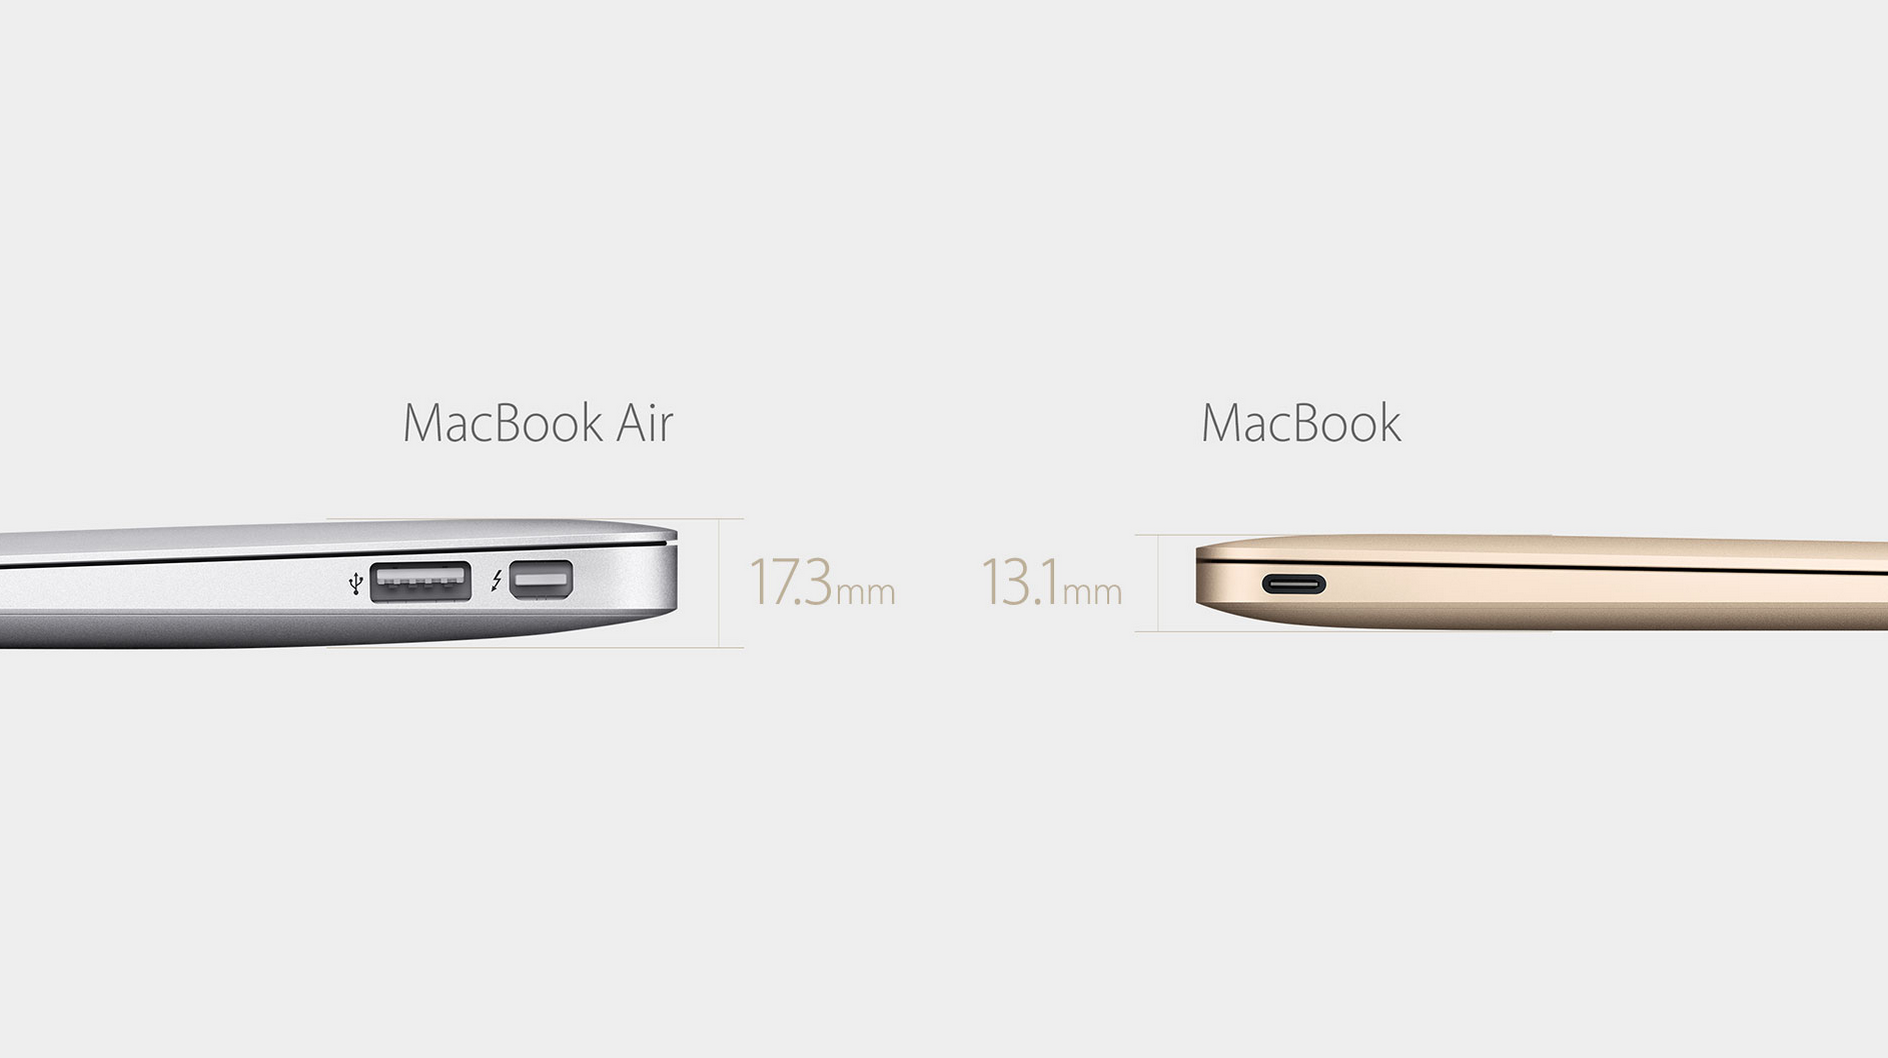 Thinner MacBook